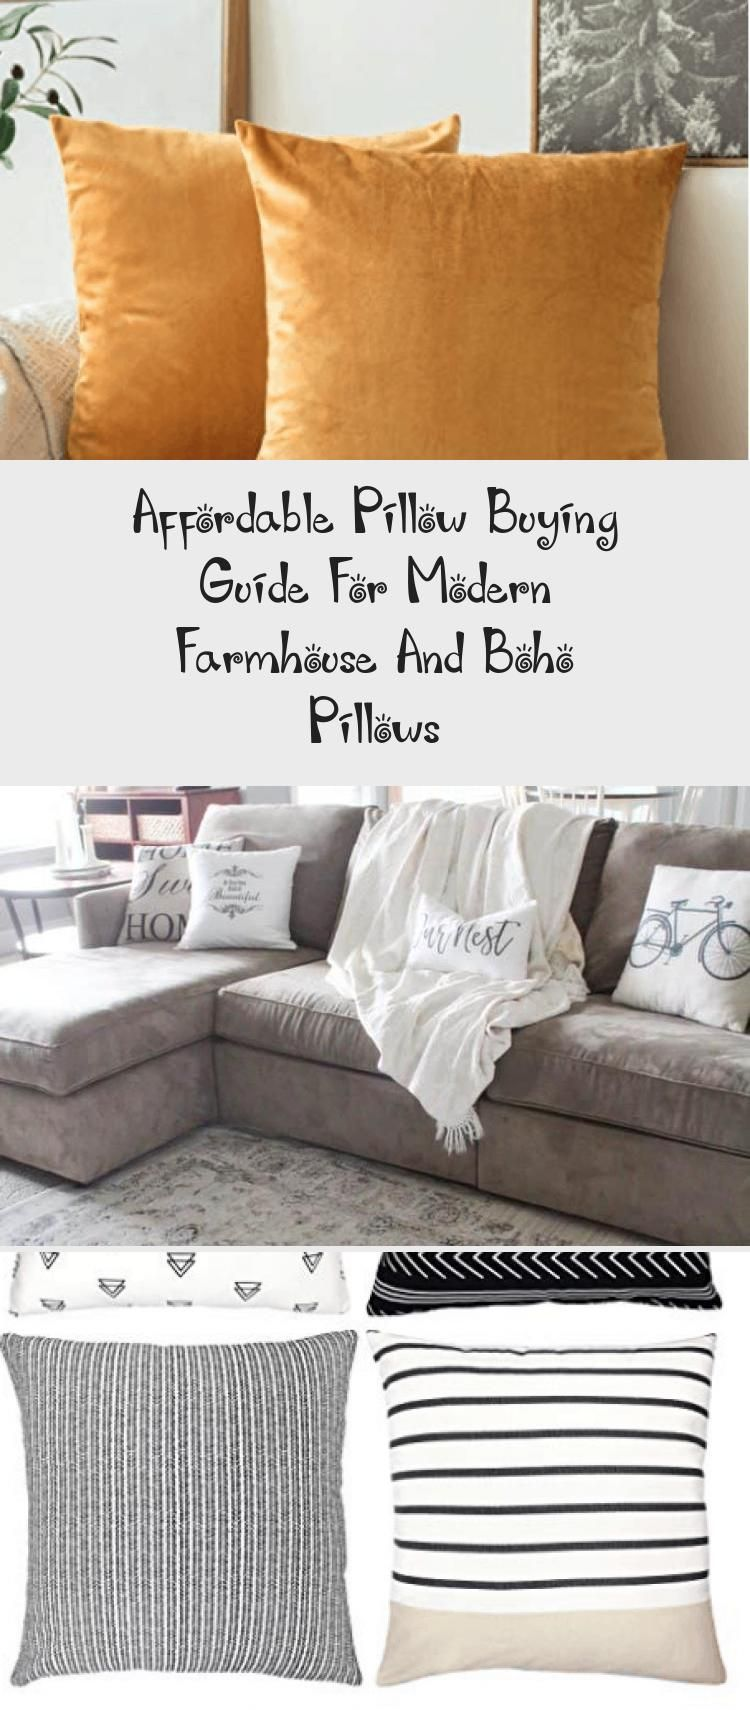 Affordable pillow buying guide for modern farmhouse and